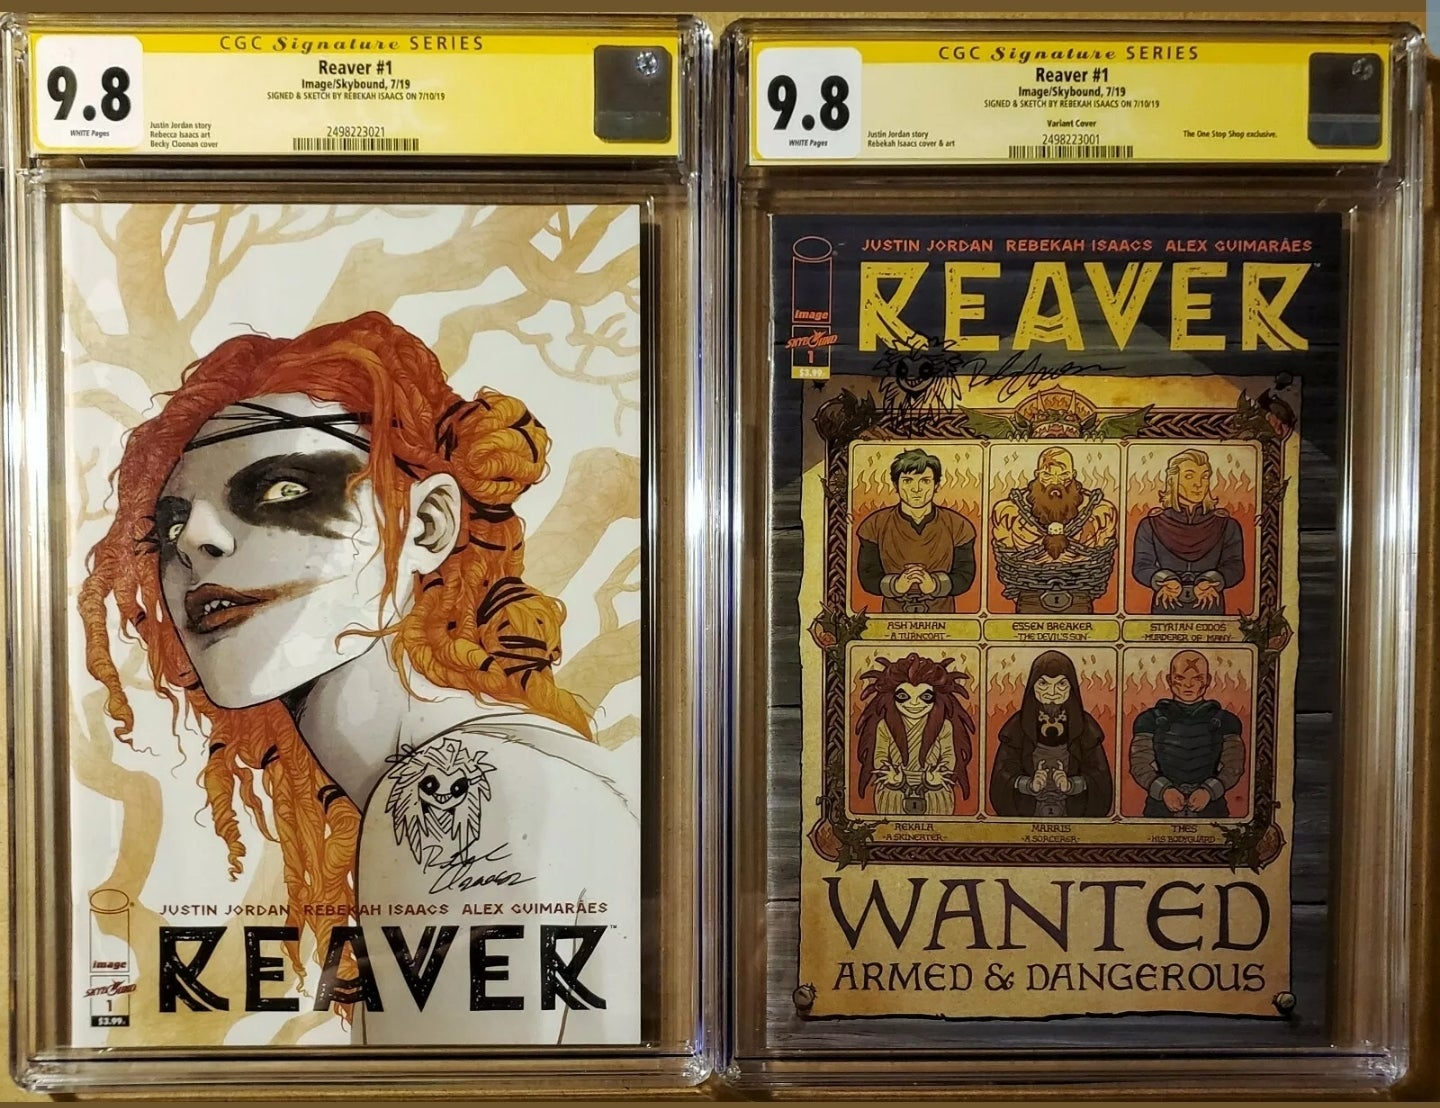 Image of REAVER #1 VARIANT + REGULAR SET CGC 9.8 SIGNED & SKETCHED BY REBEKAH ISAACS